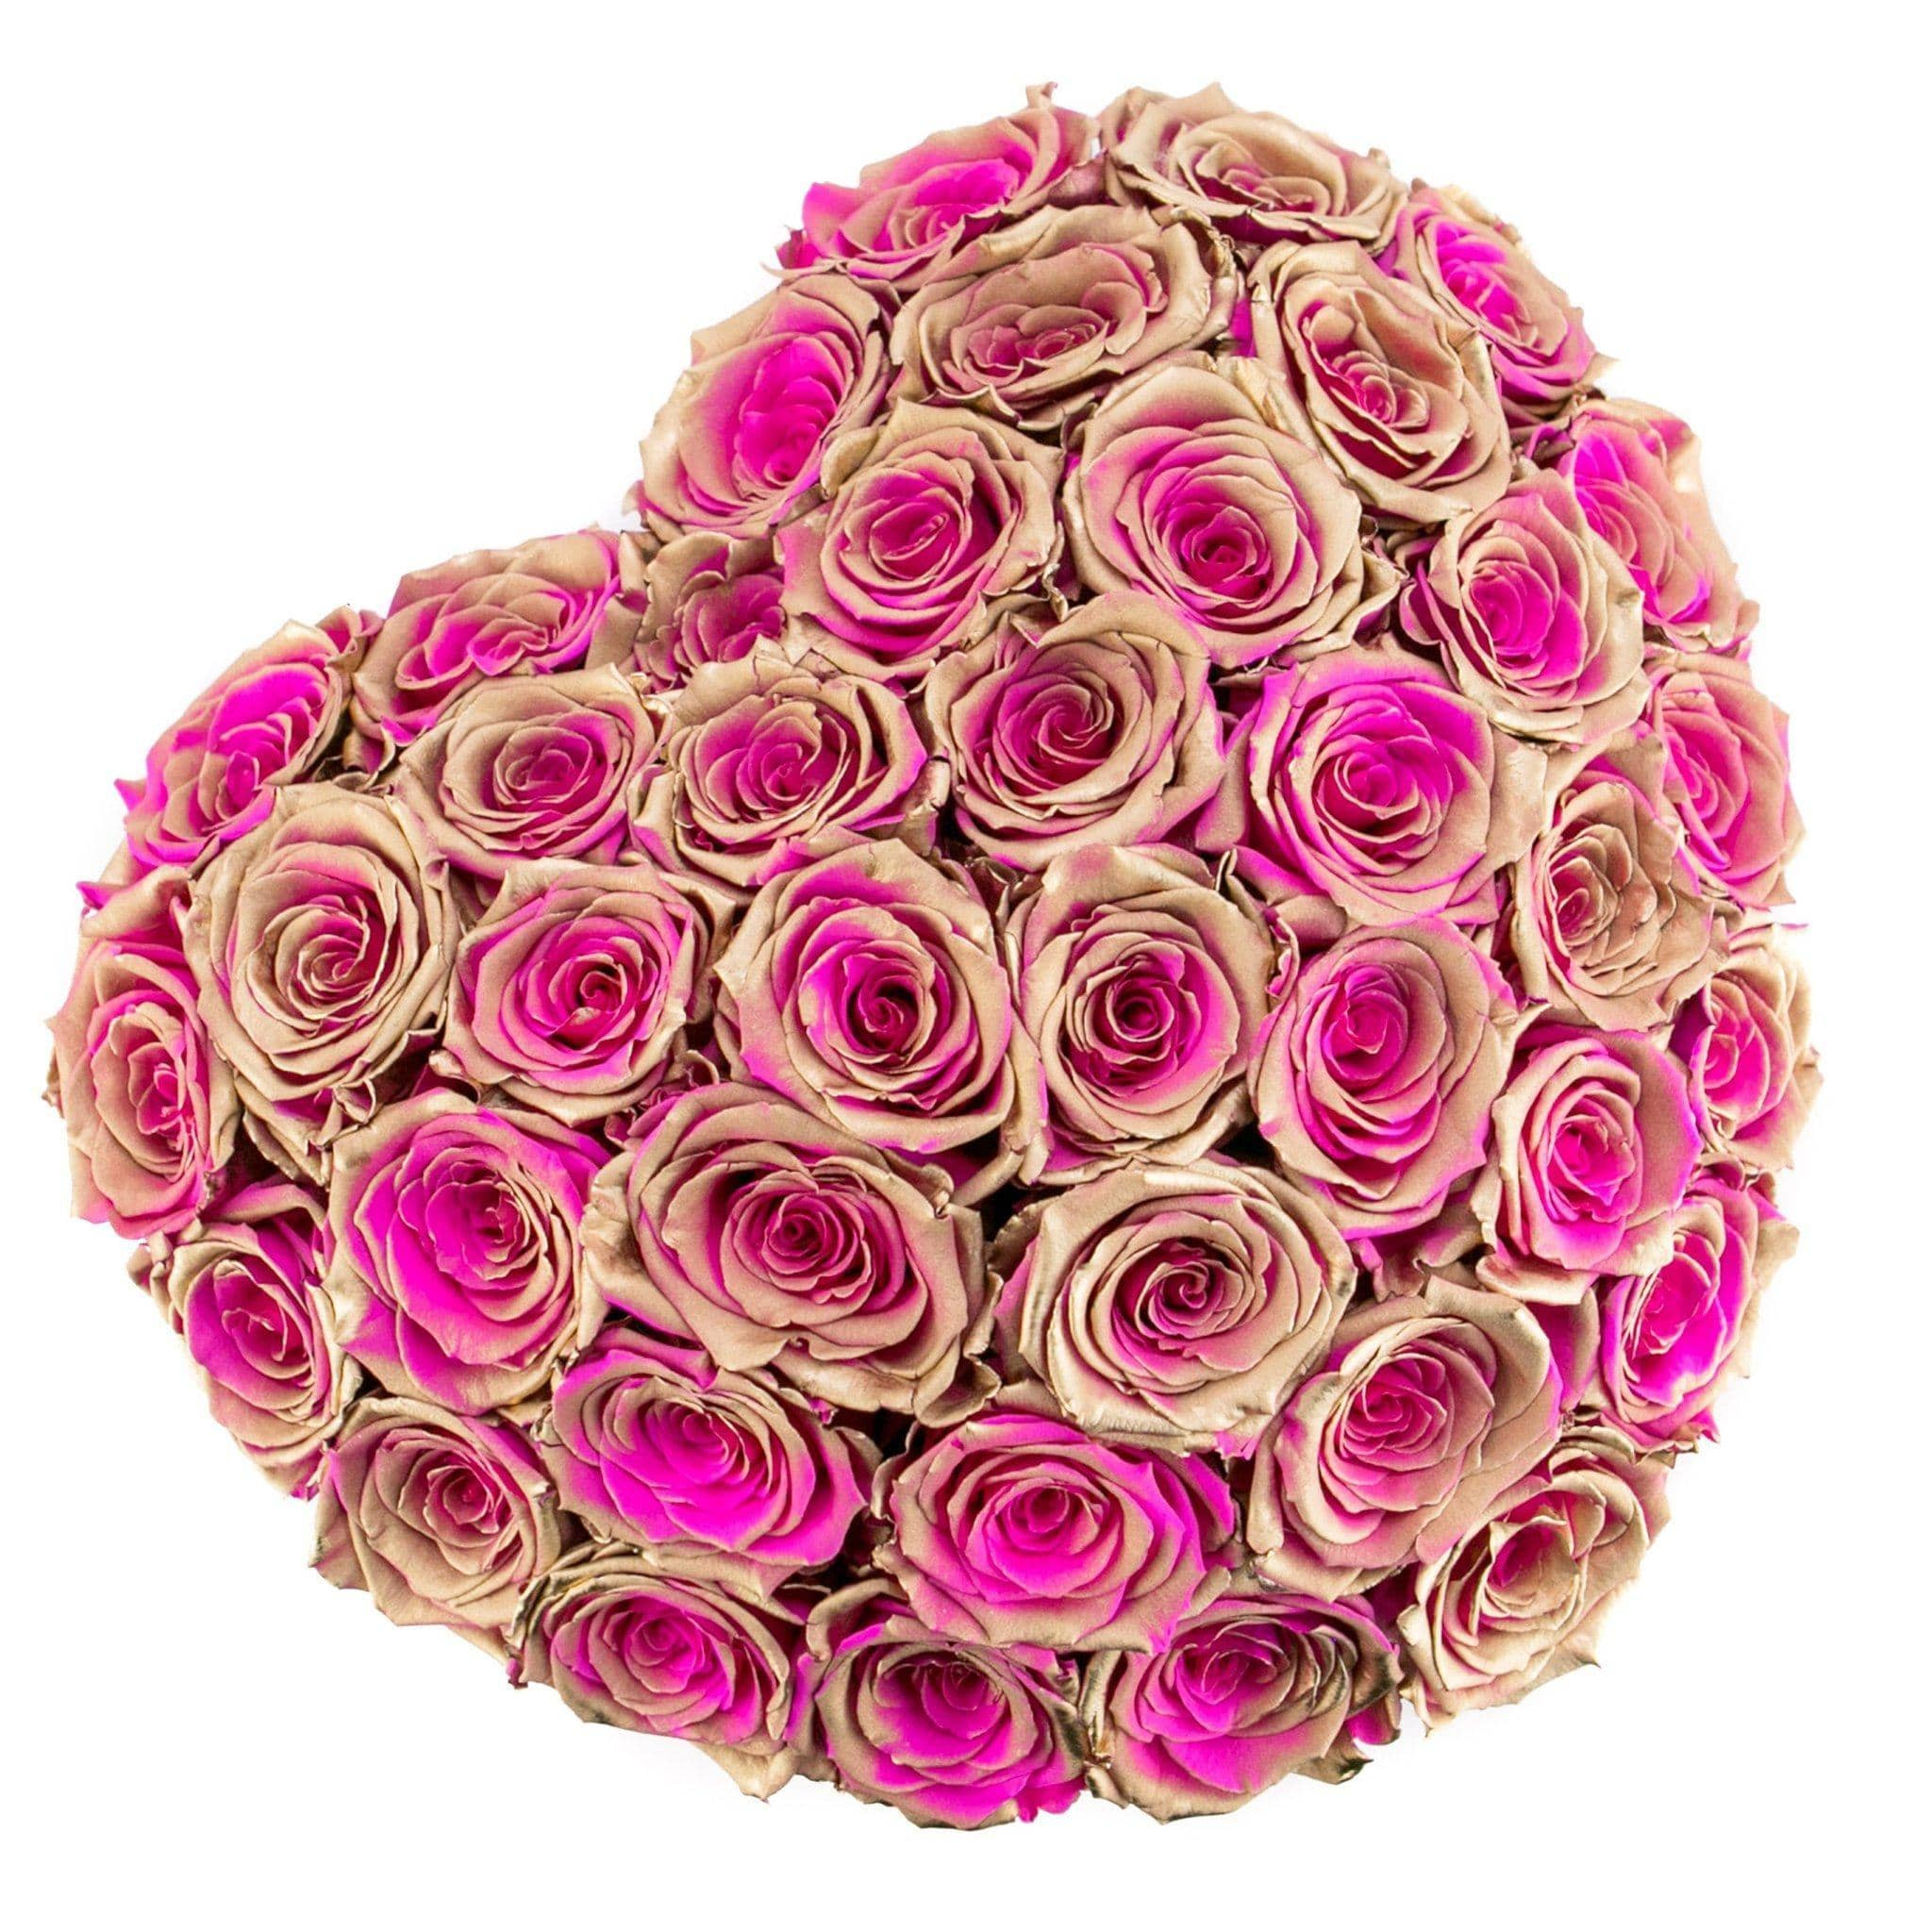 Golden Pink Roses That Last A Year - Love Heart Rose Box - Palatial Petals